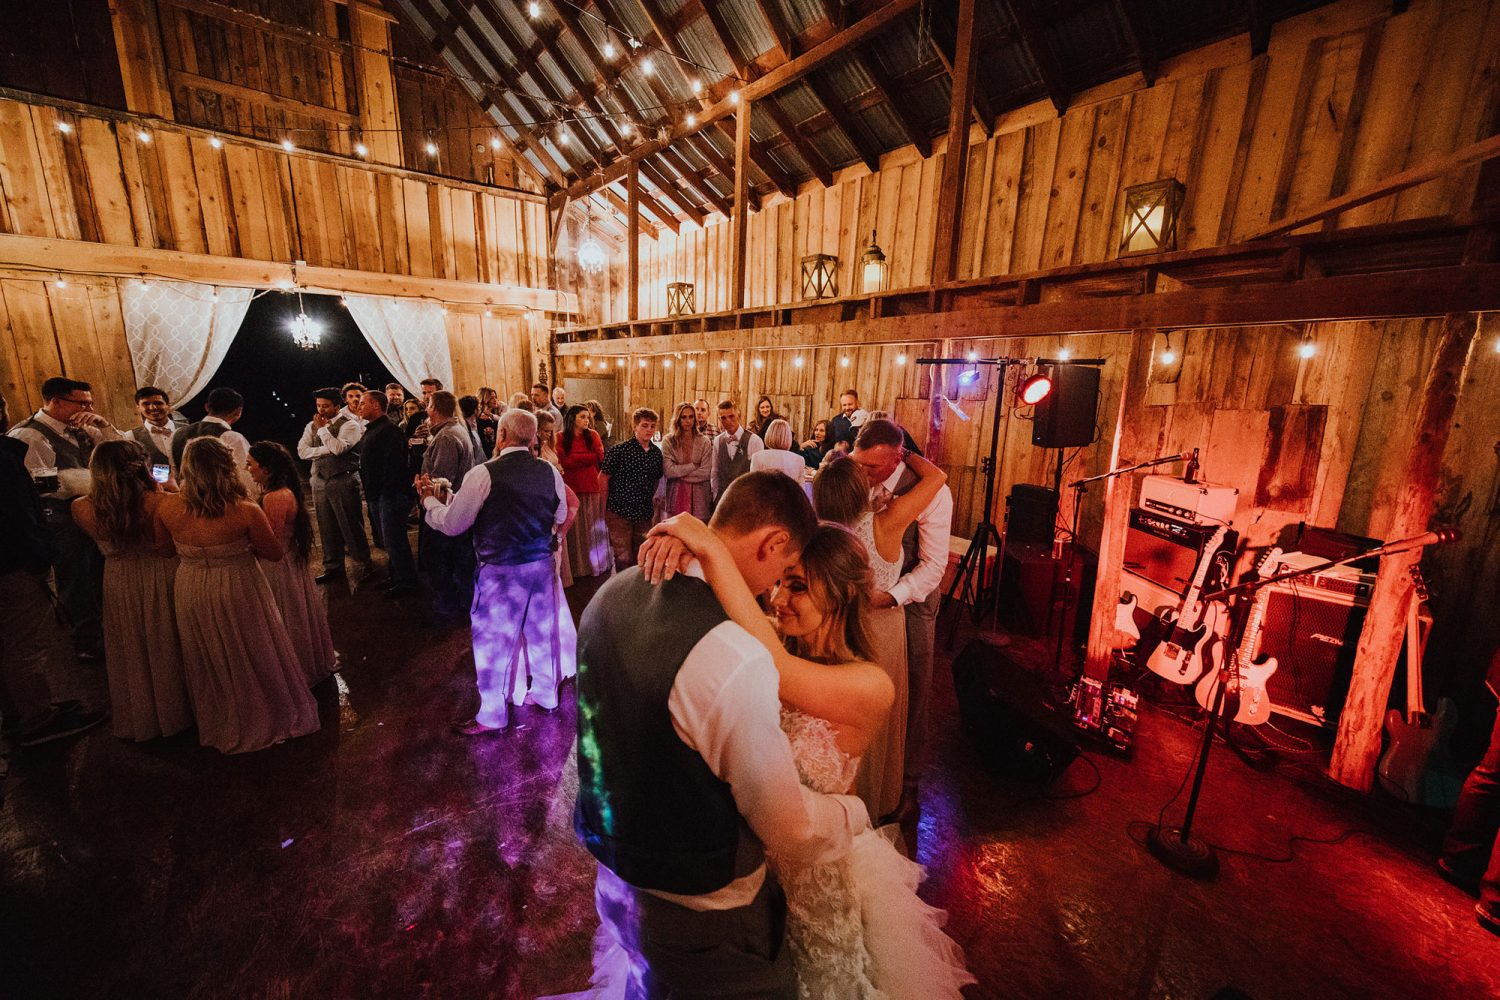 Barn dancing at a rustic ranch wedding in New Mexico